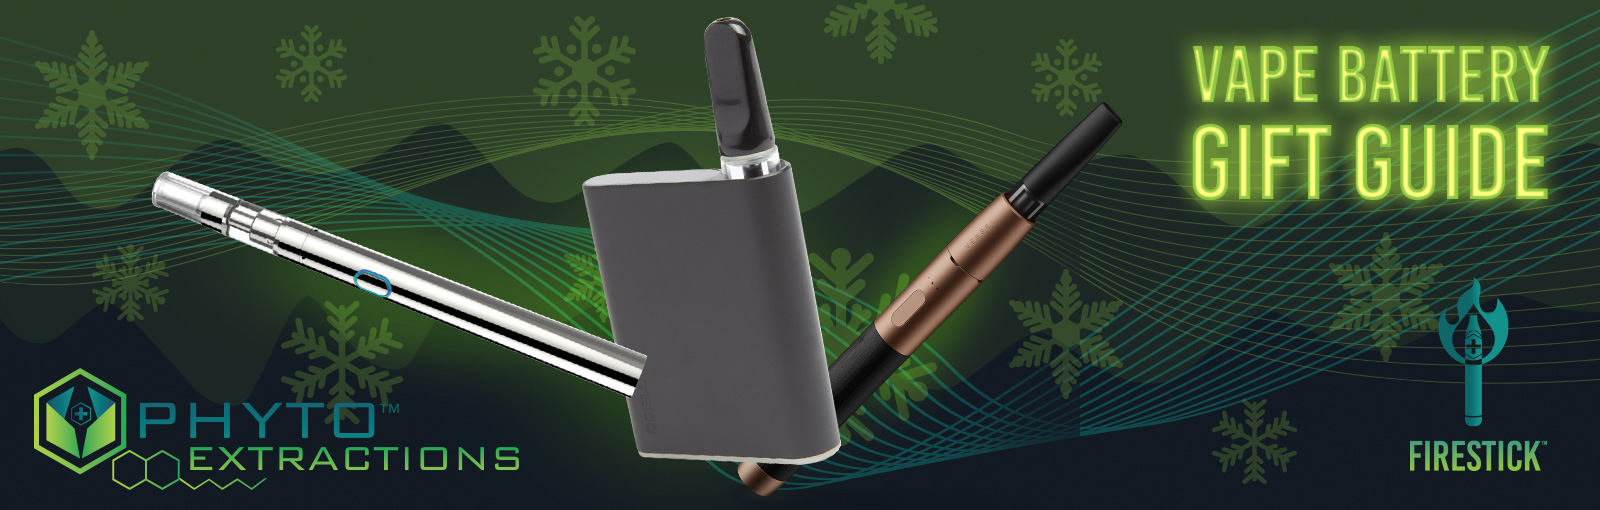 510 vape battery gift guide